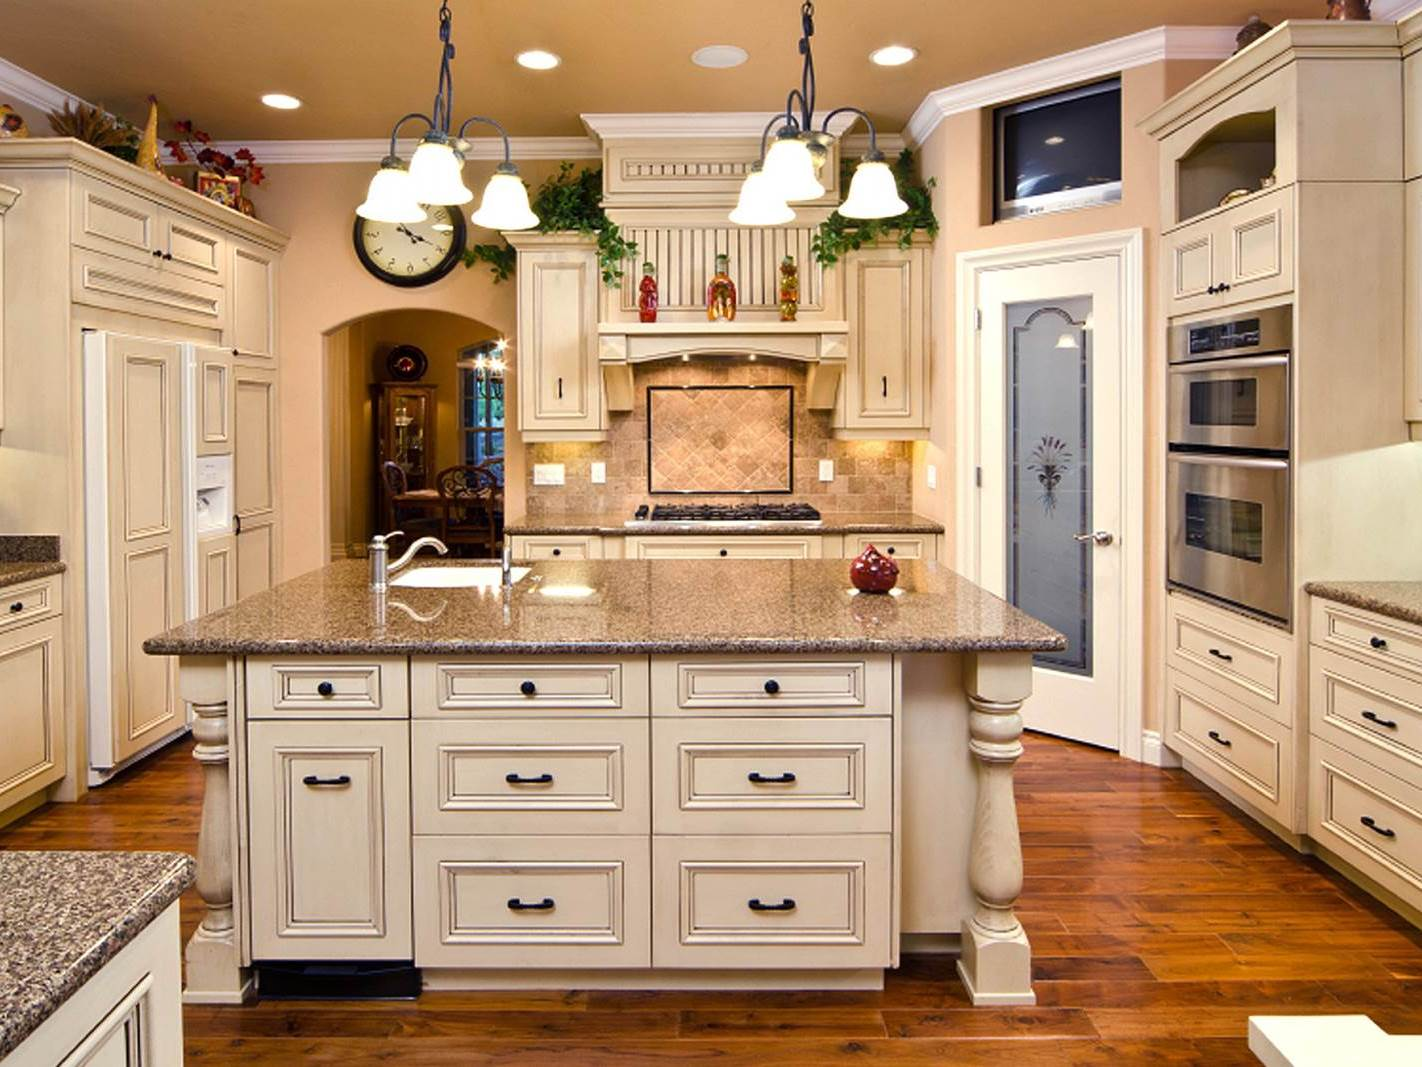 Marpro Cabinets Refacing Kitchen Cabinets Painting Niles Il